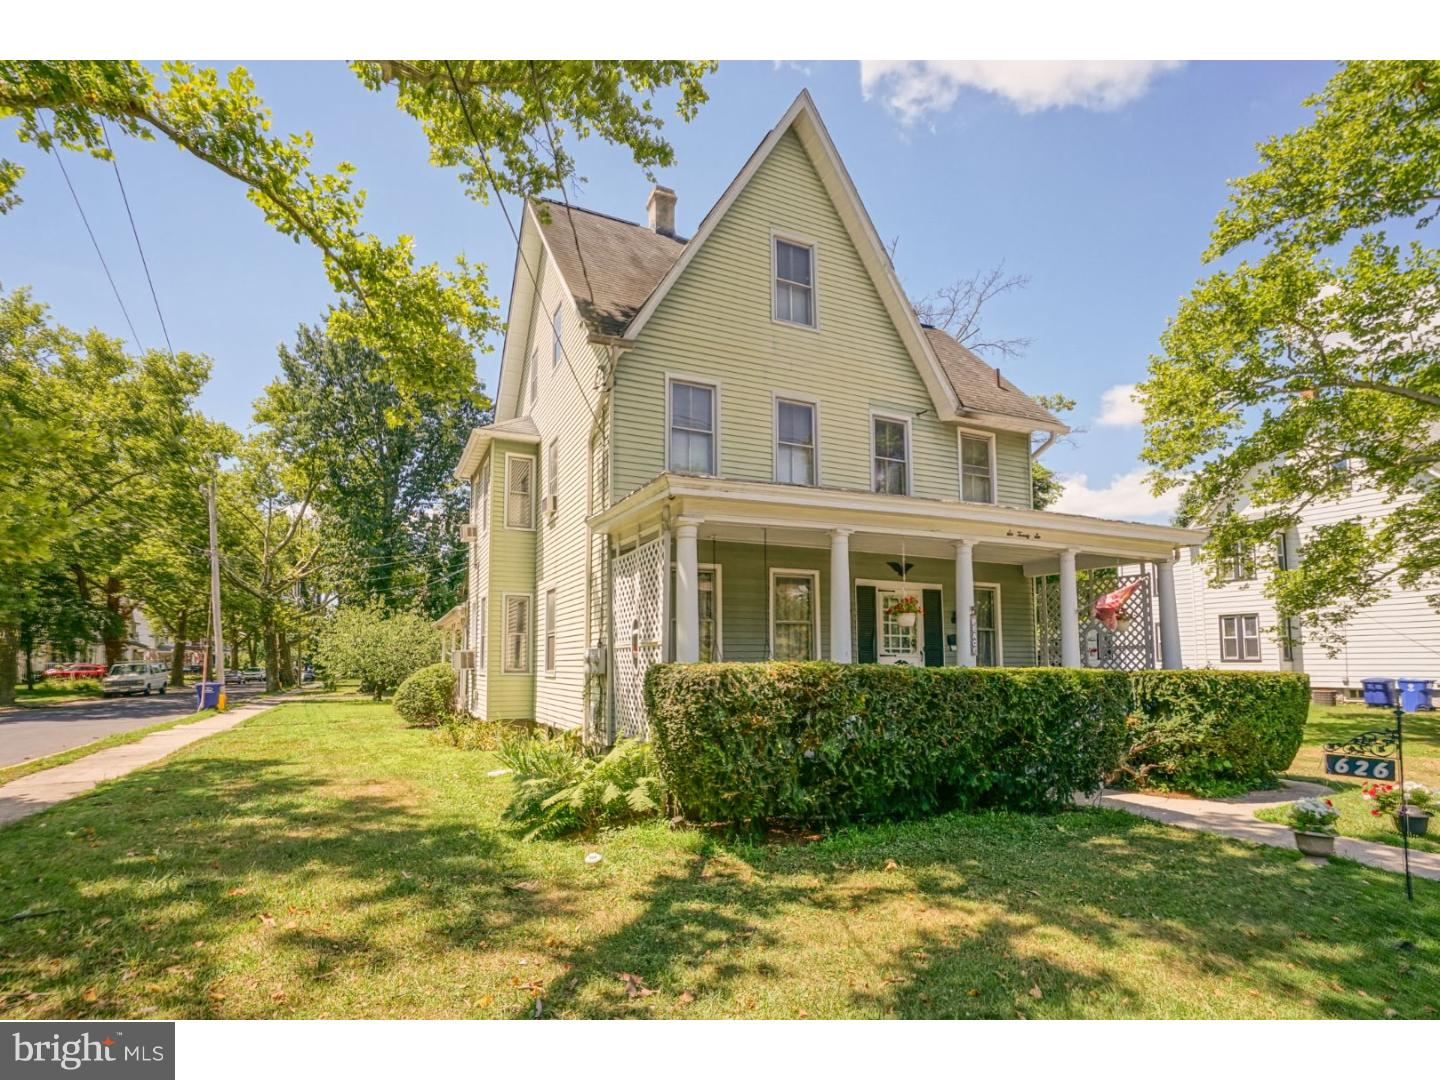 Duplex for Sale at 624-626 MAIN Street Riverton, New Jersey 08077 United States